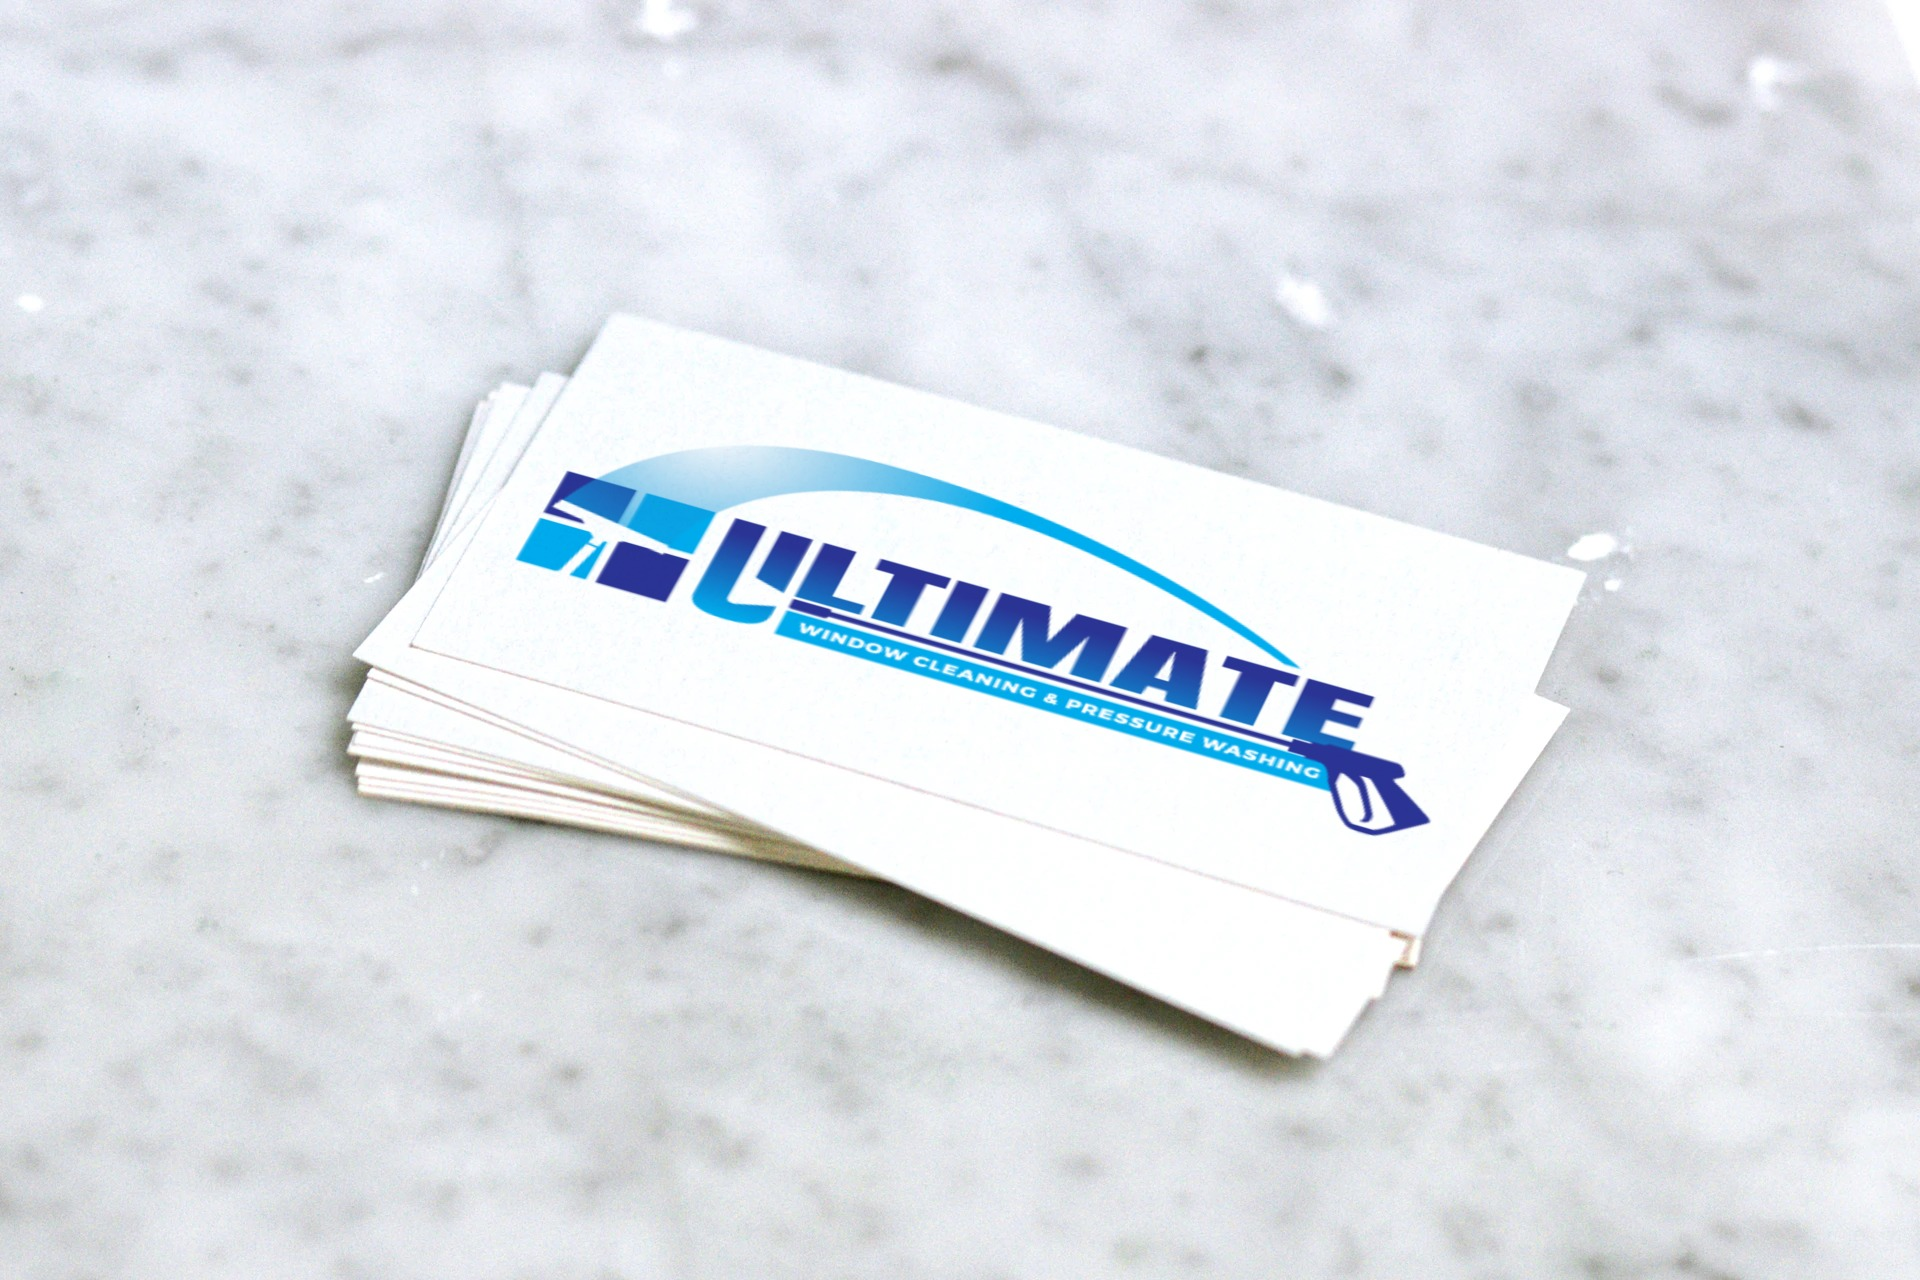 Ultimate Windows logo business cards